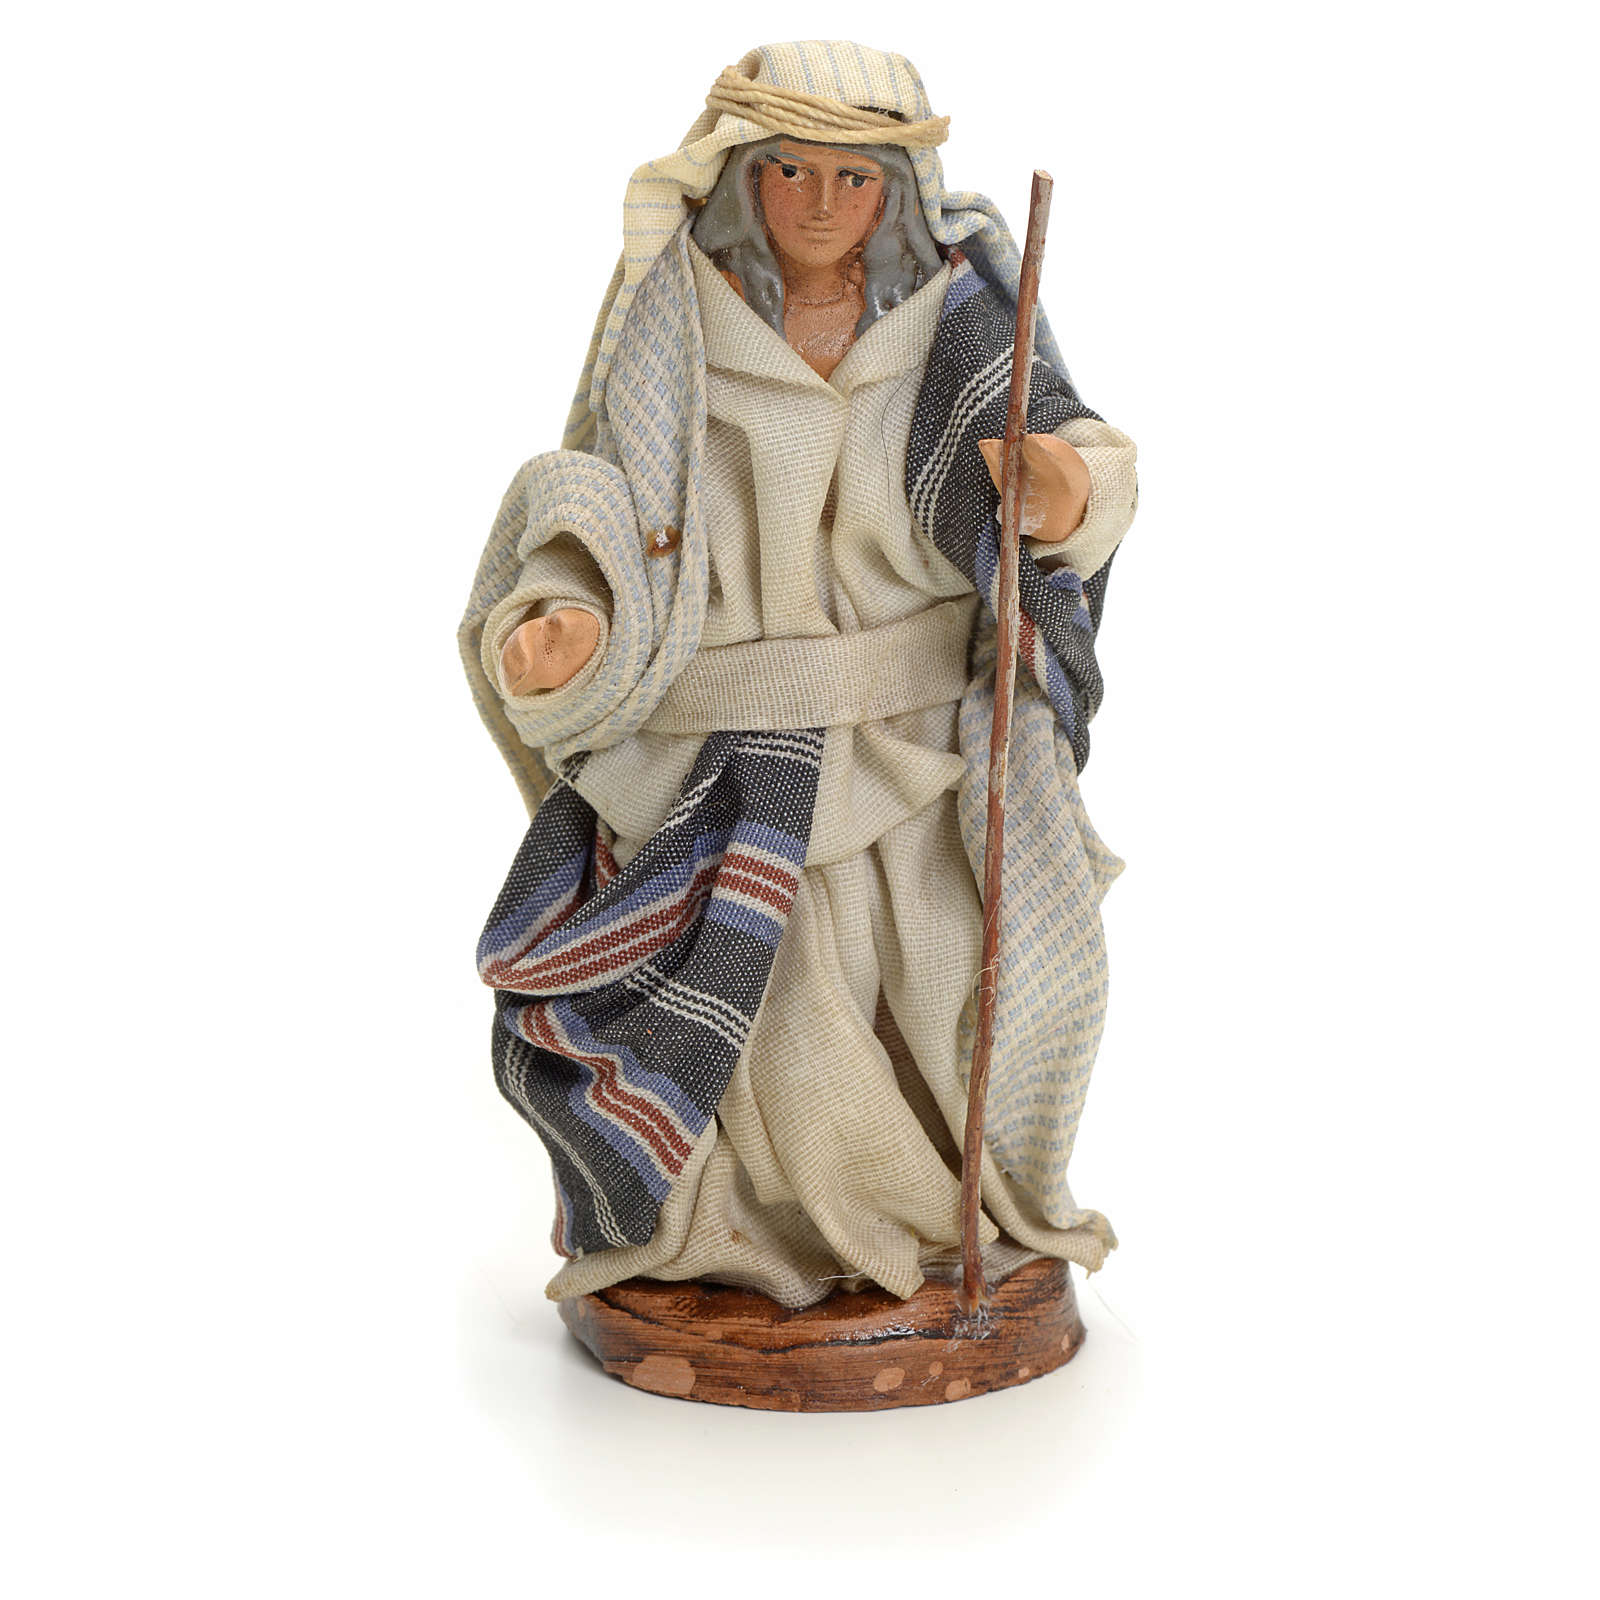 Neapolitan nativity figurine, Arabian man with stick, 8cm 4